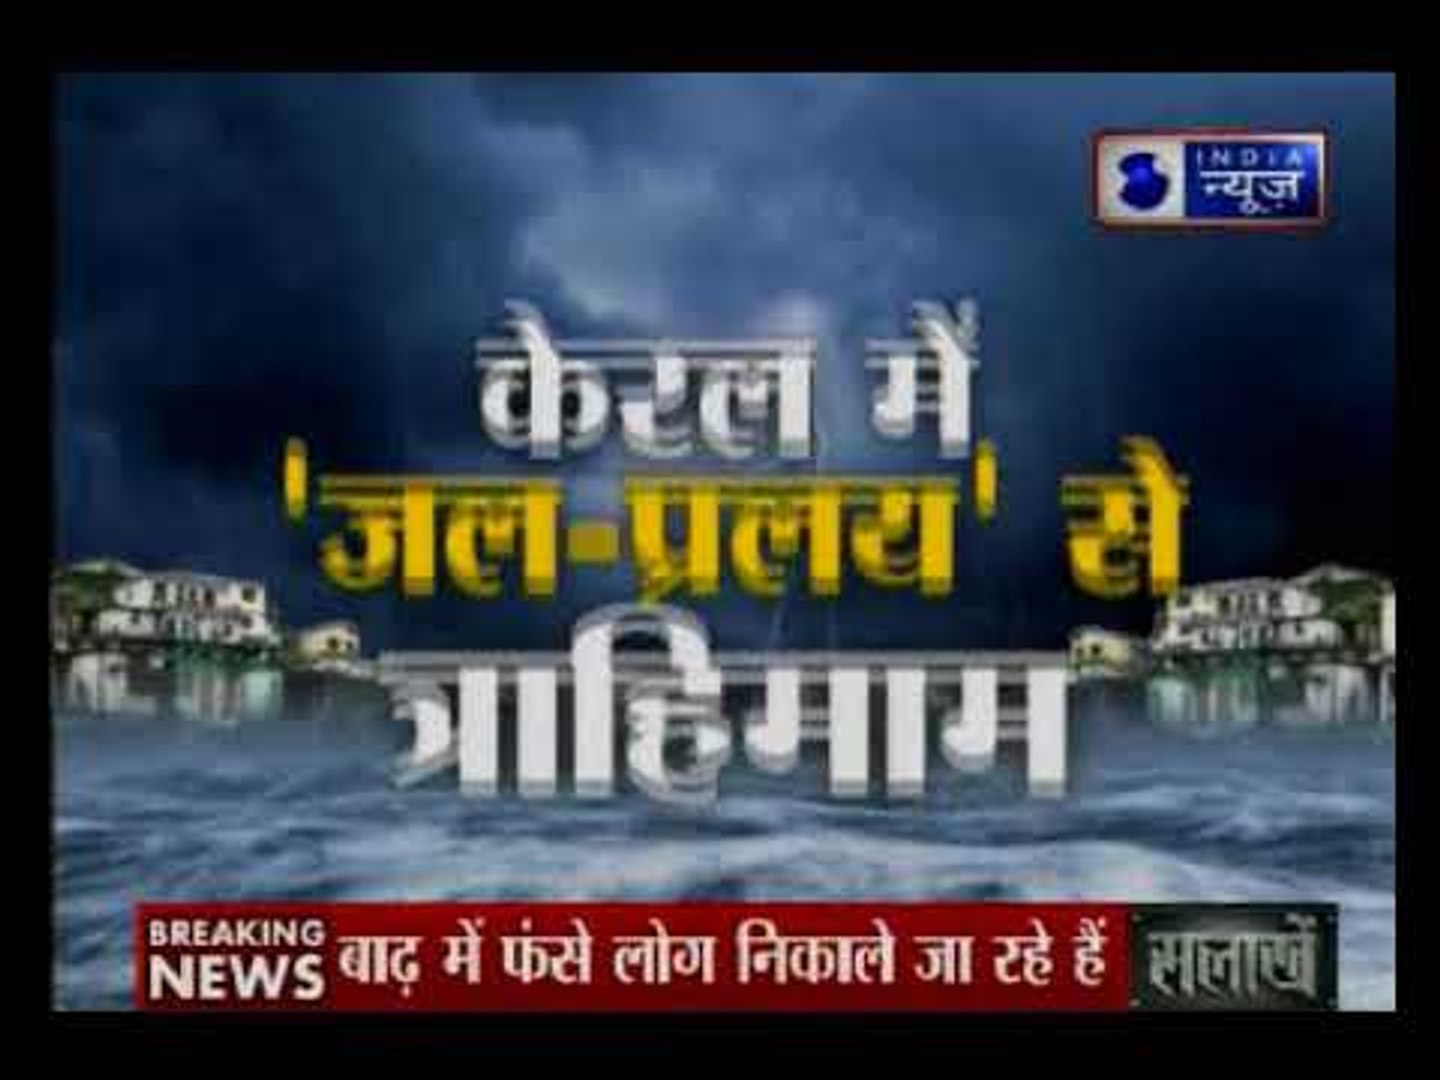 आज की बड़ी खबरें| Top News of Today in Hindi | India News | Suno India